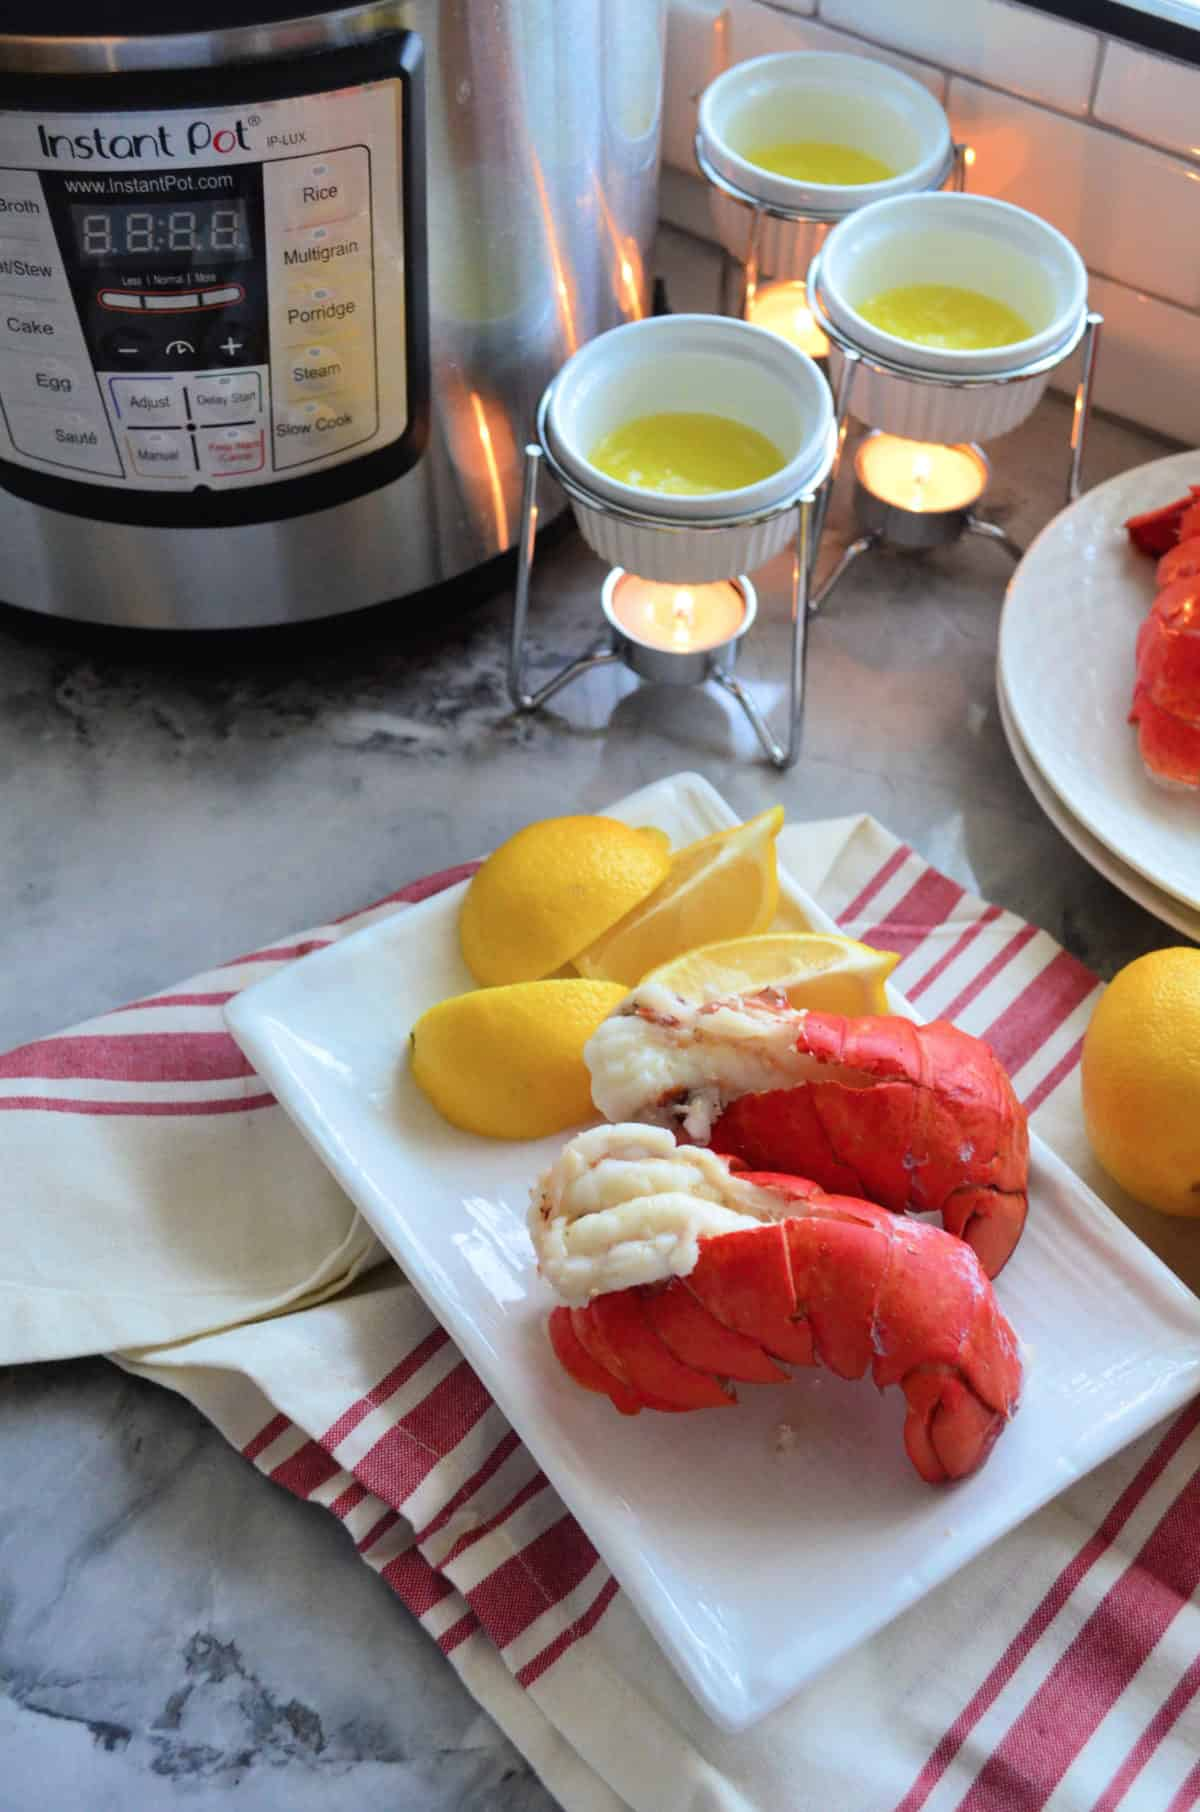 Two plated lobster tails with lemon and hot butter on tablecloth in front of instant pot.